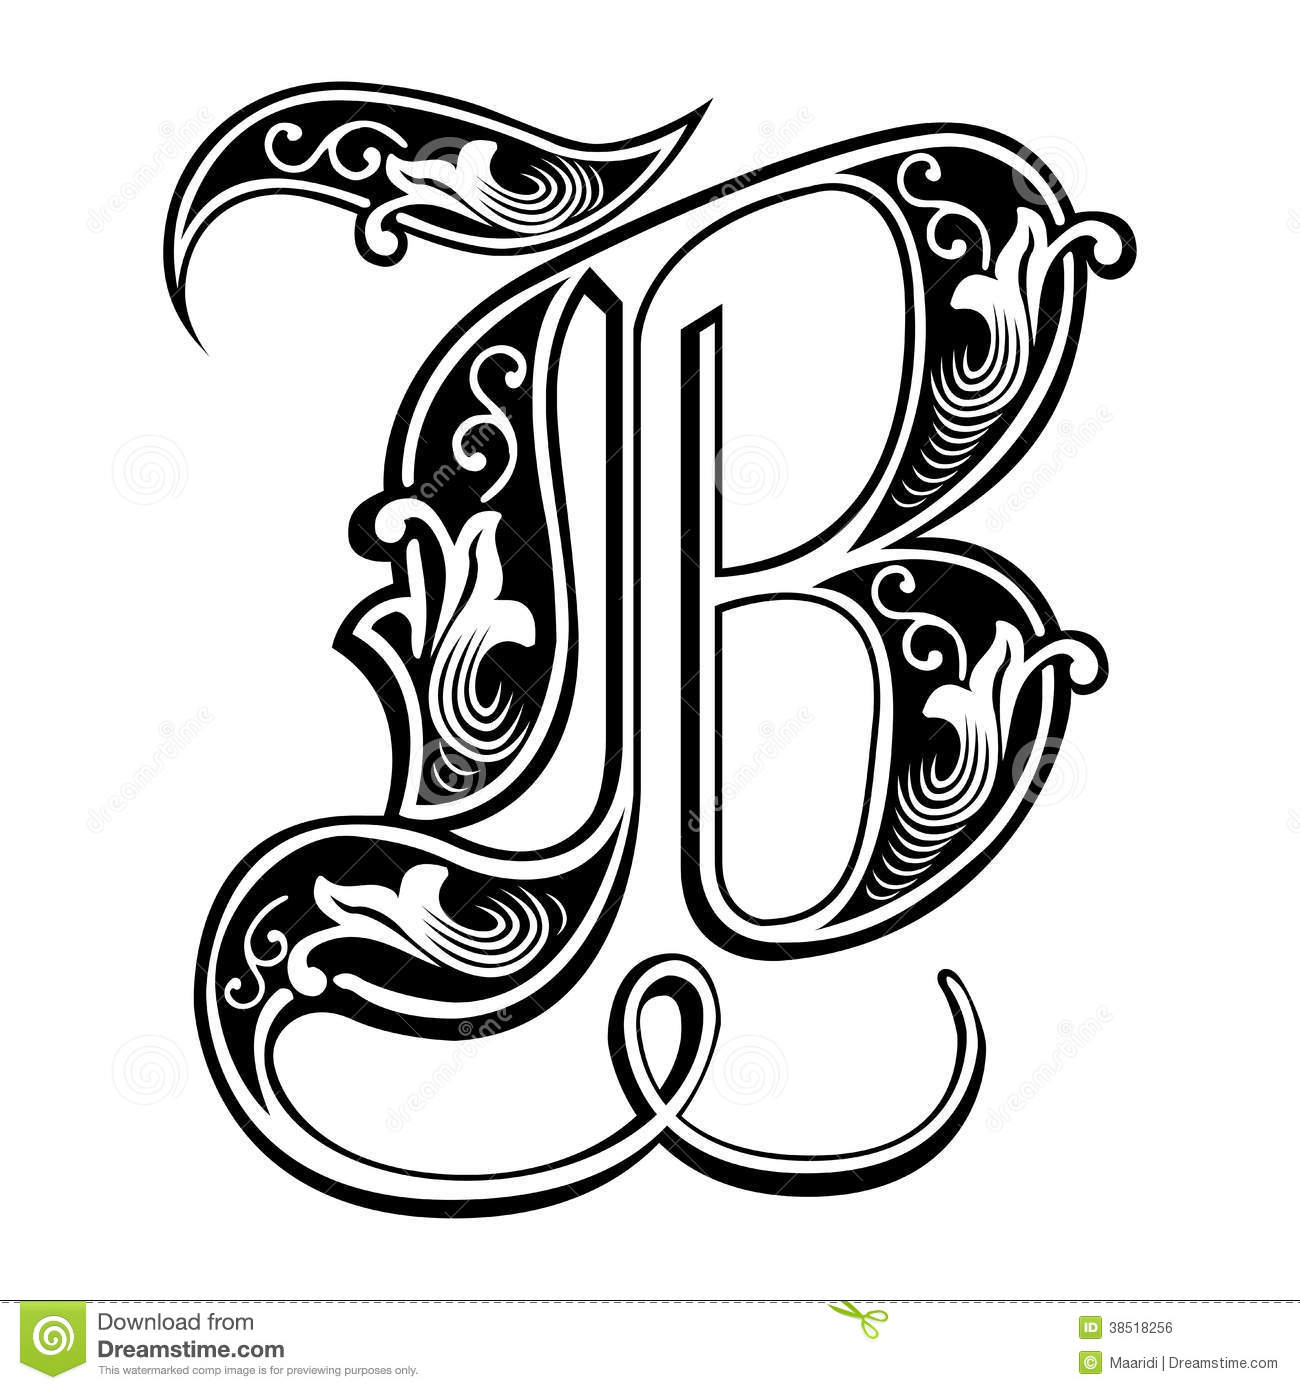 Garnished Gothic Style Font Letter B Royalty Free Stock